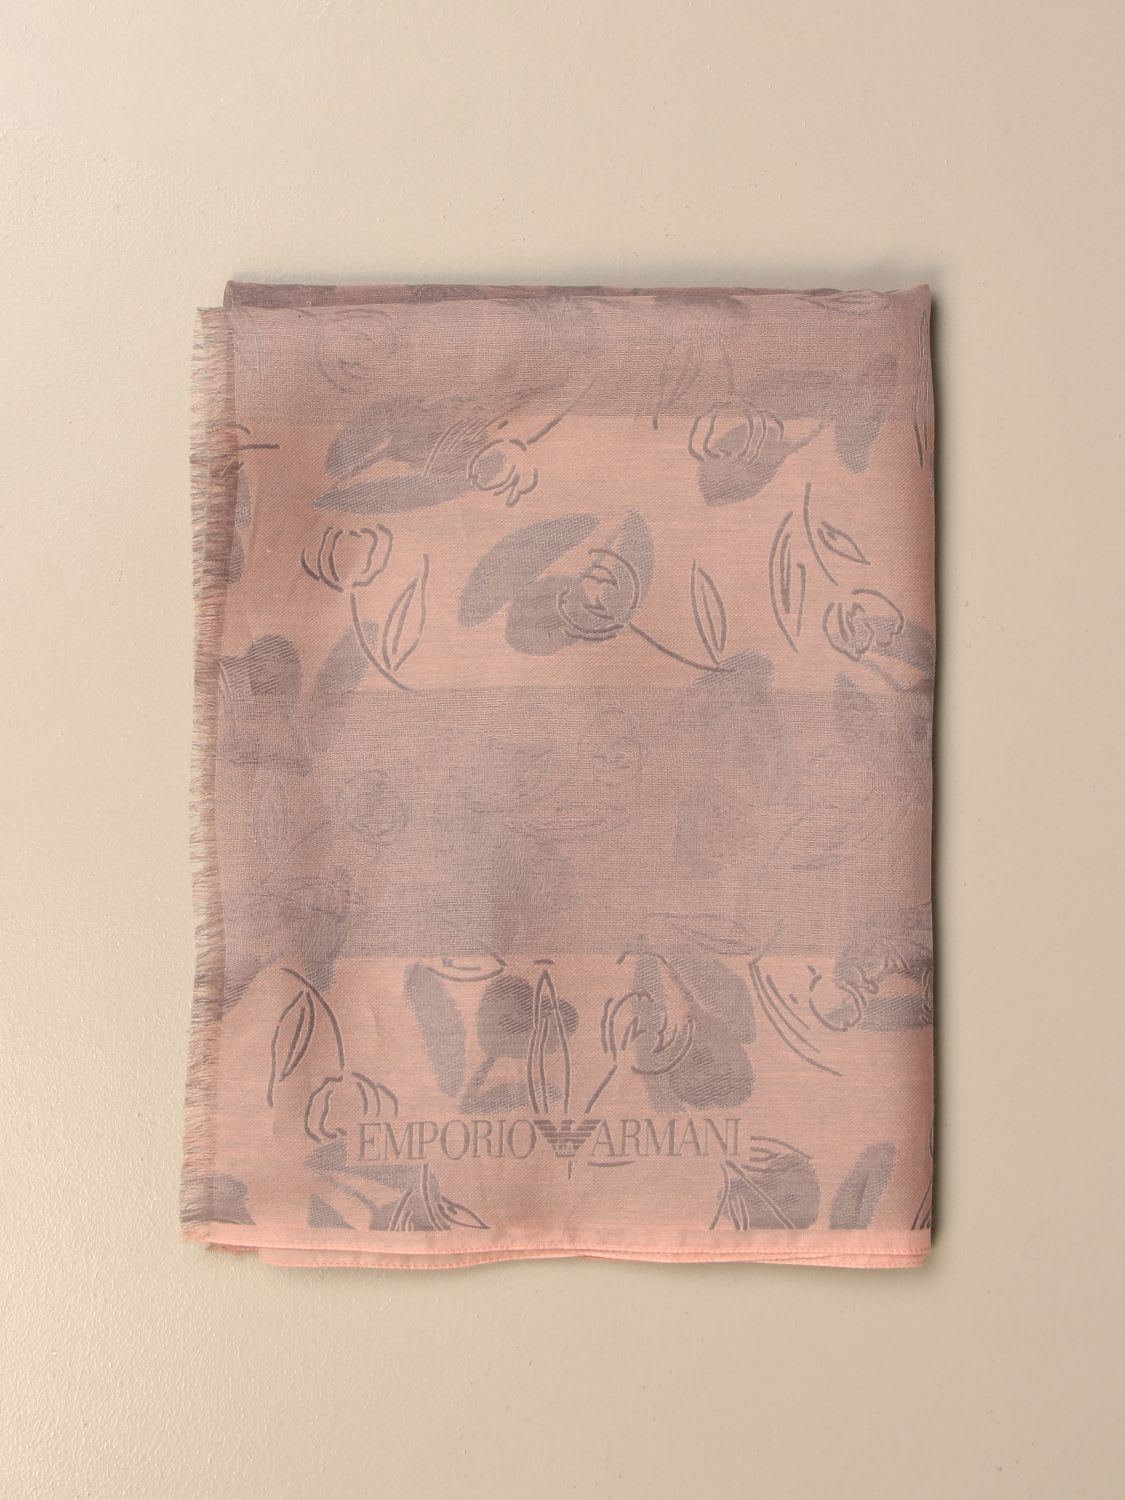 Emporio Armani Scarf Emporio Armani Scarf In Patterned Silk And Cotton